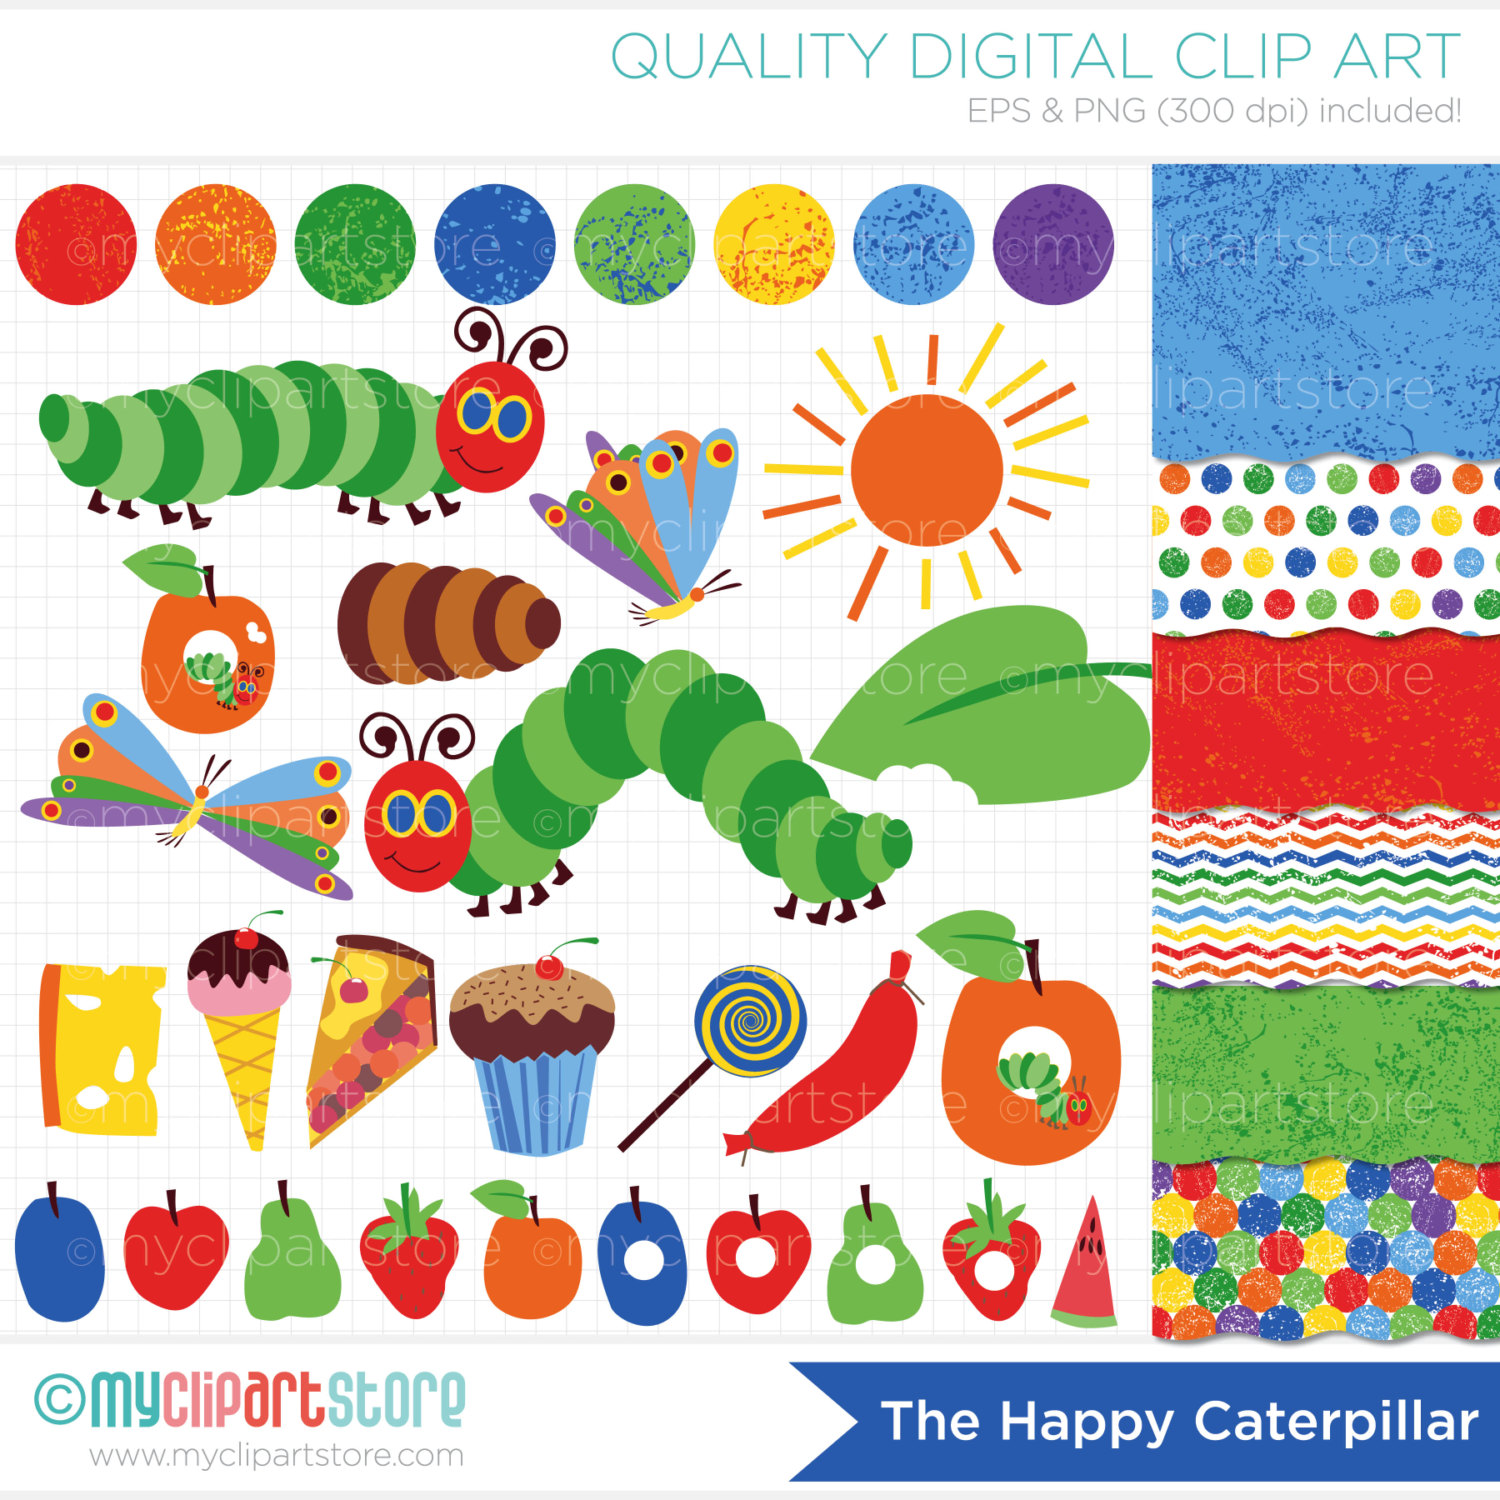 Go Back Images For Very Hungry Caterpill-Go Back Images For Very Hungry Caterpillar Clipart-7